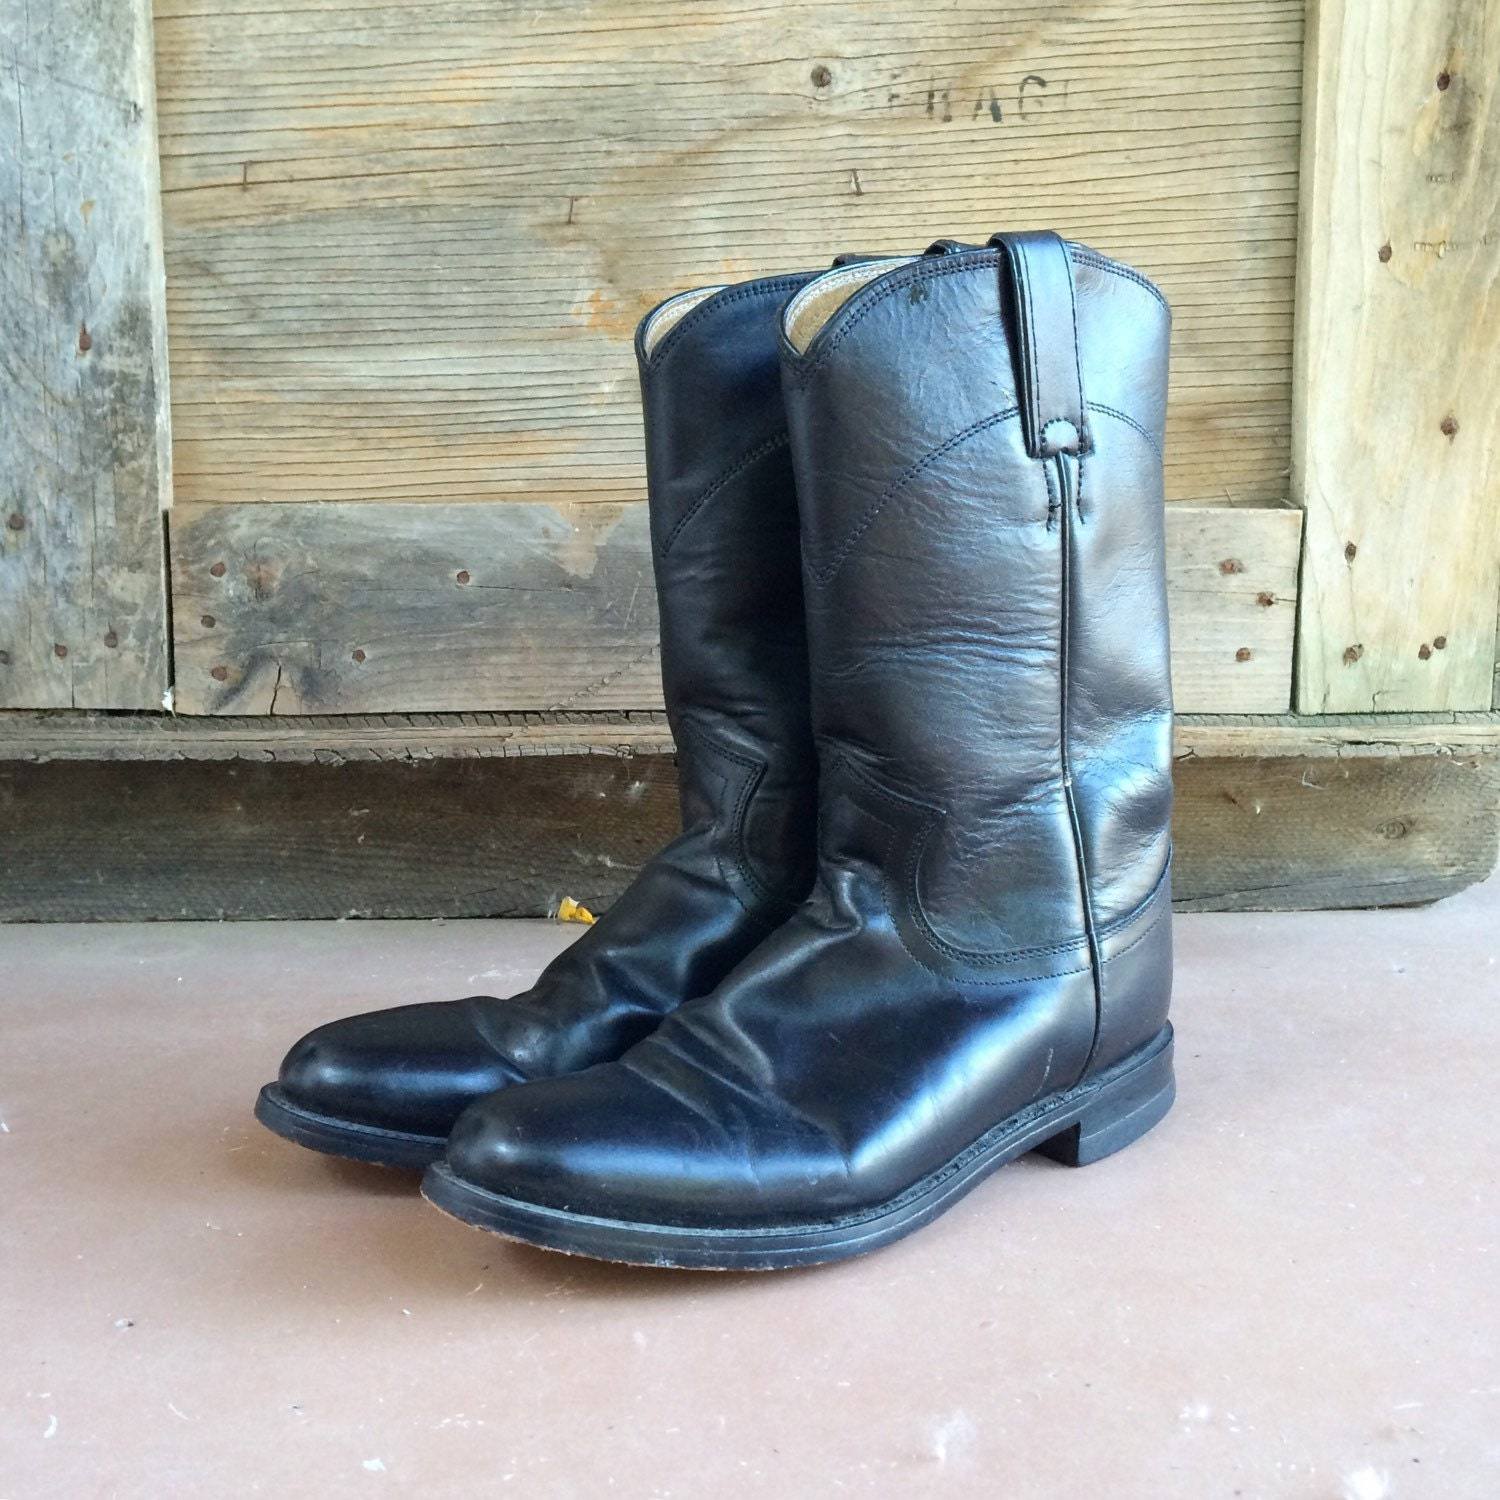 6e5b9e4b917 Vintage Justin Roper cowgirl boots Women's size 6 B (fits up to size 6.5)